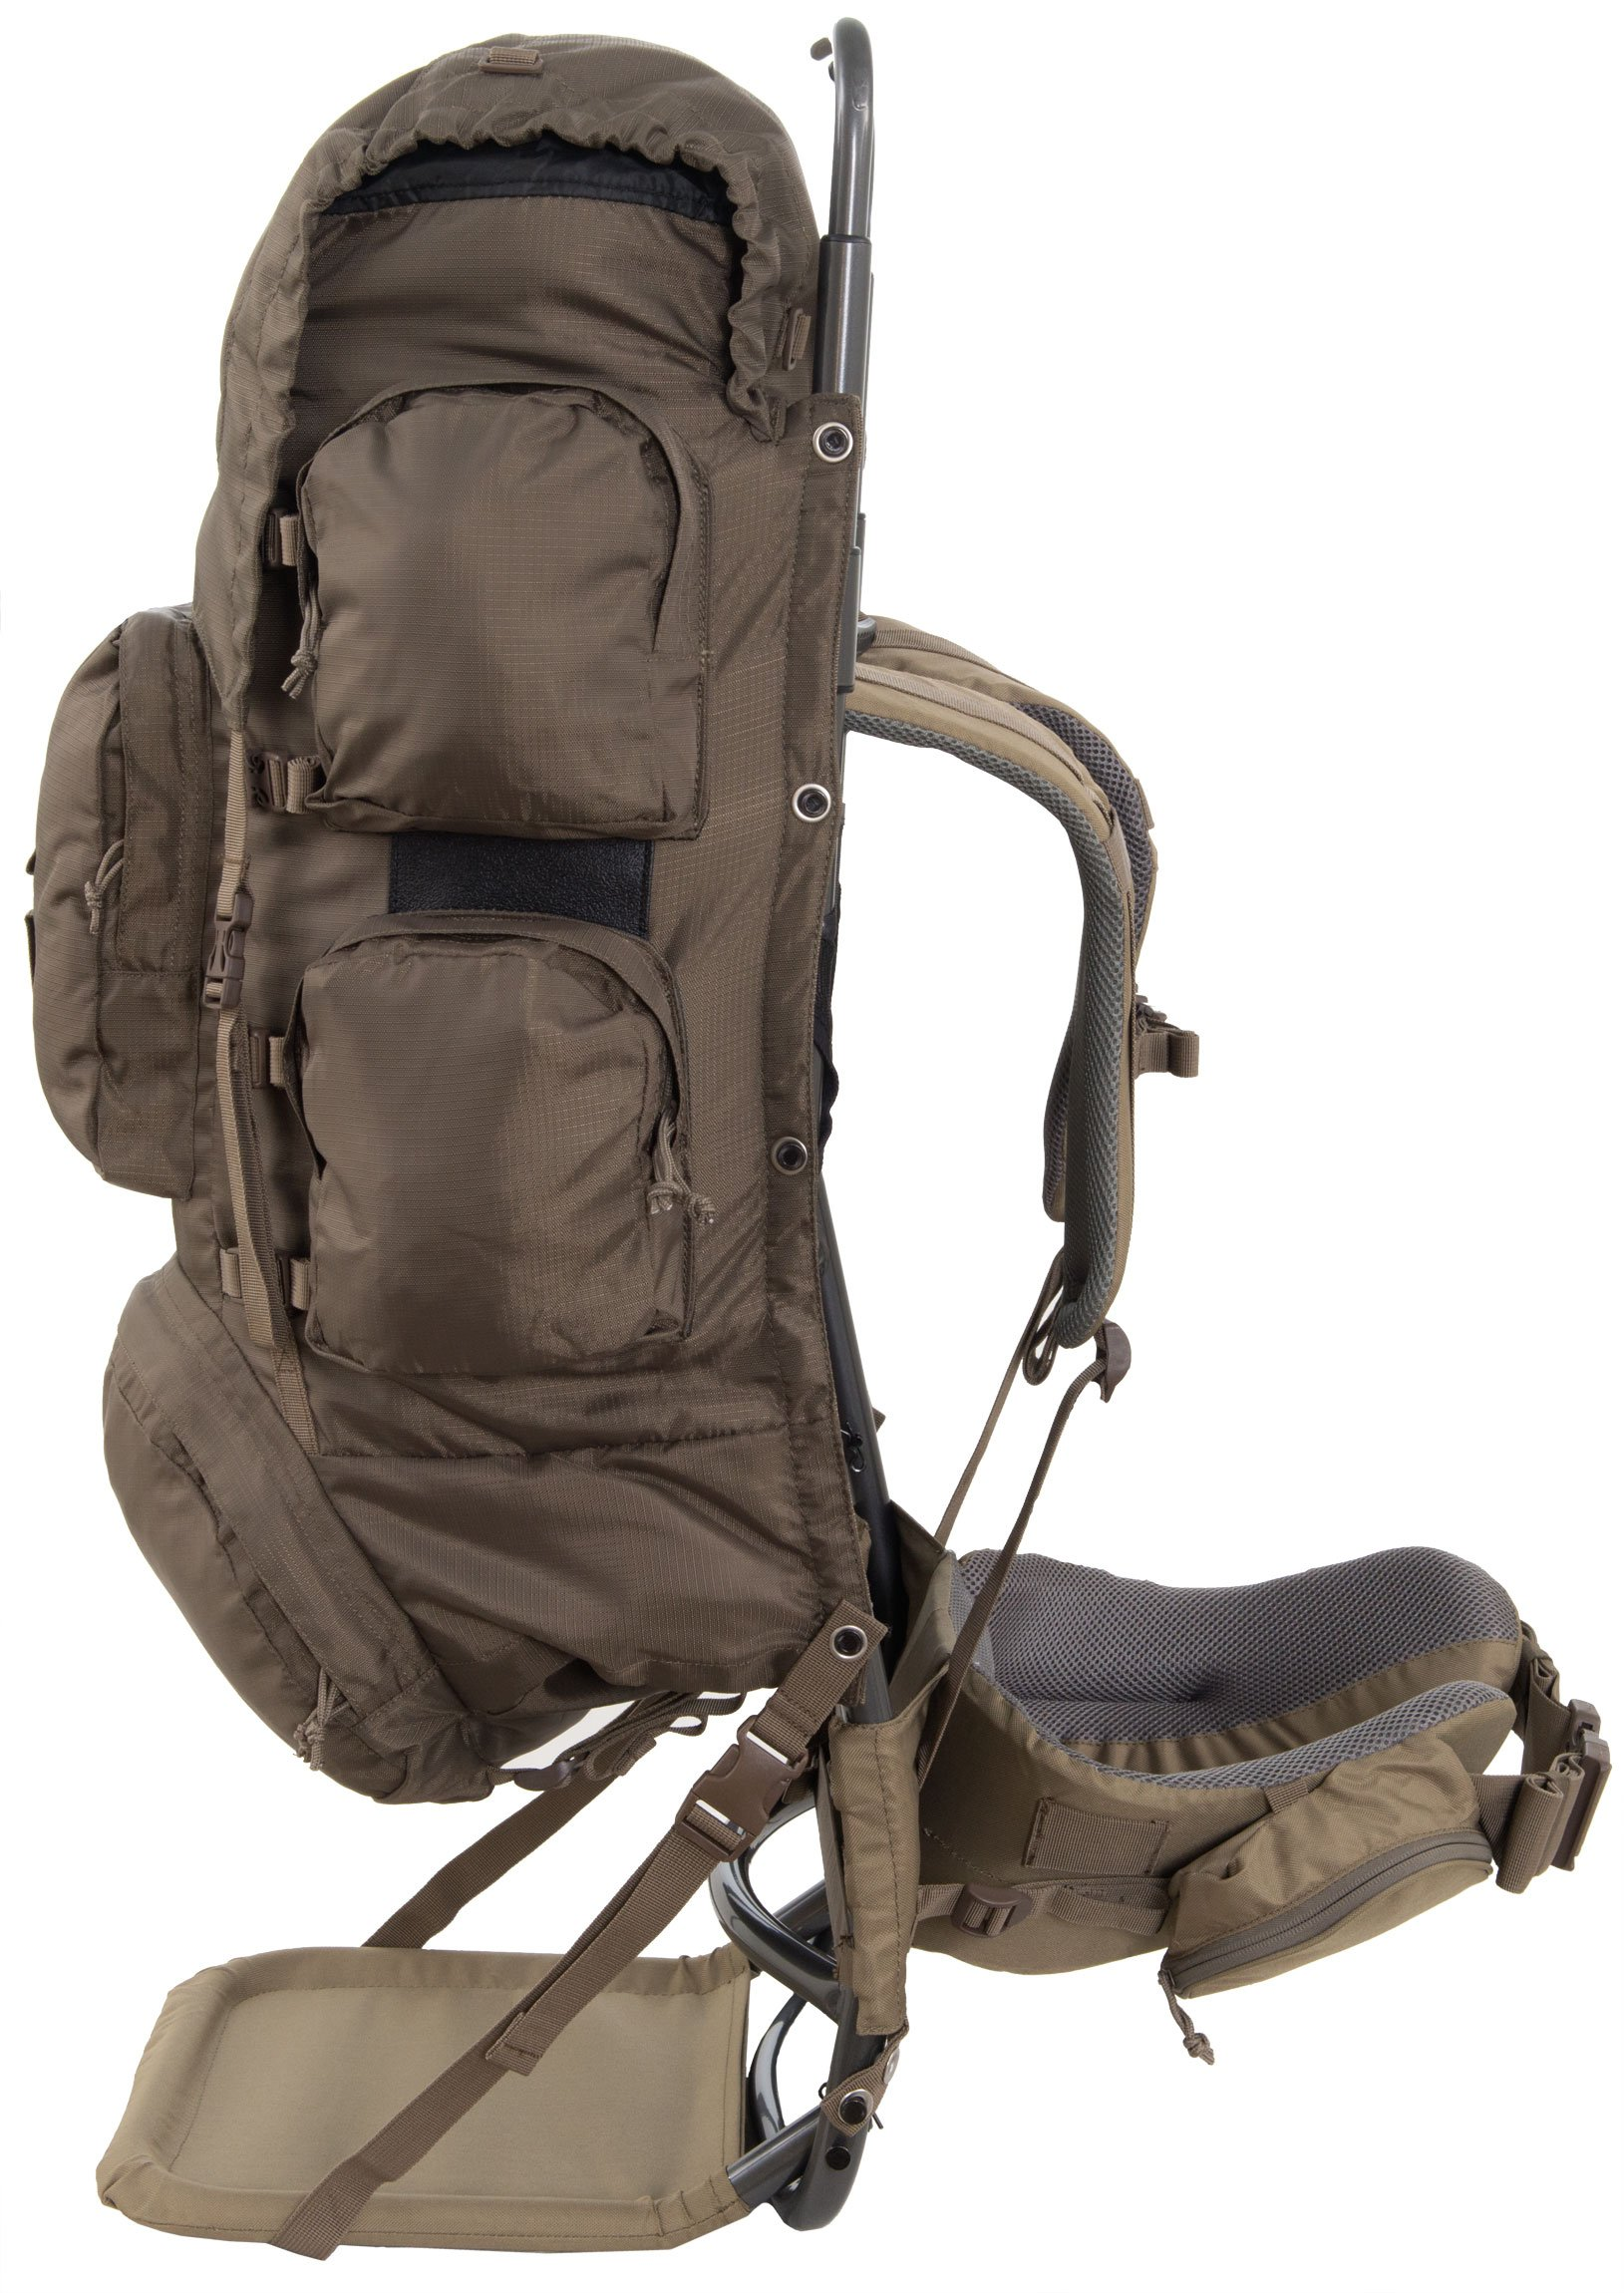 Hunting Rifle Backpack Frame Bag Outdoor Camping Hiking